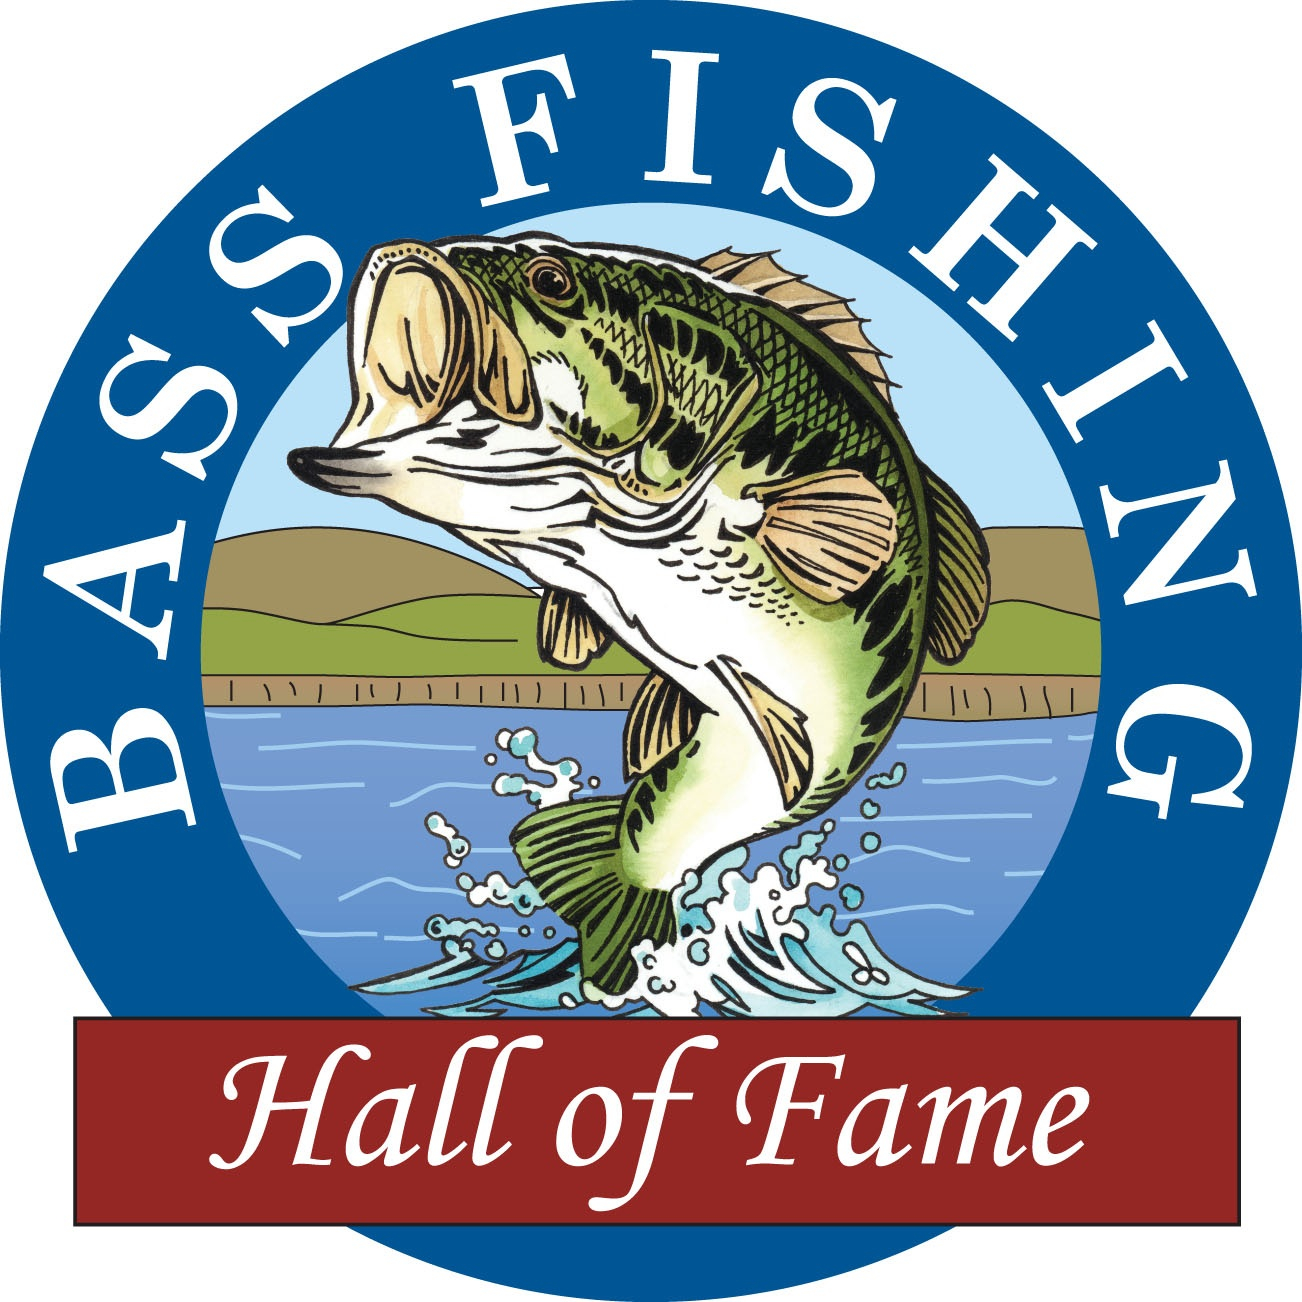 Bass Fishing Hall of Fame